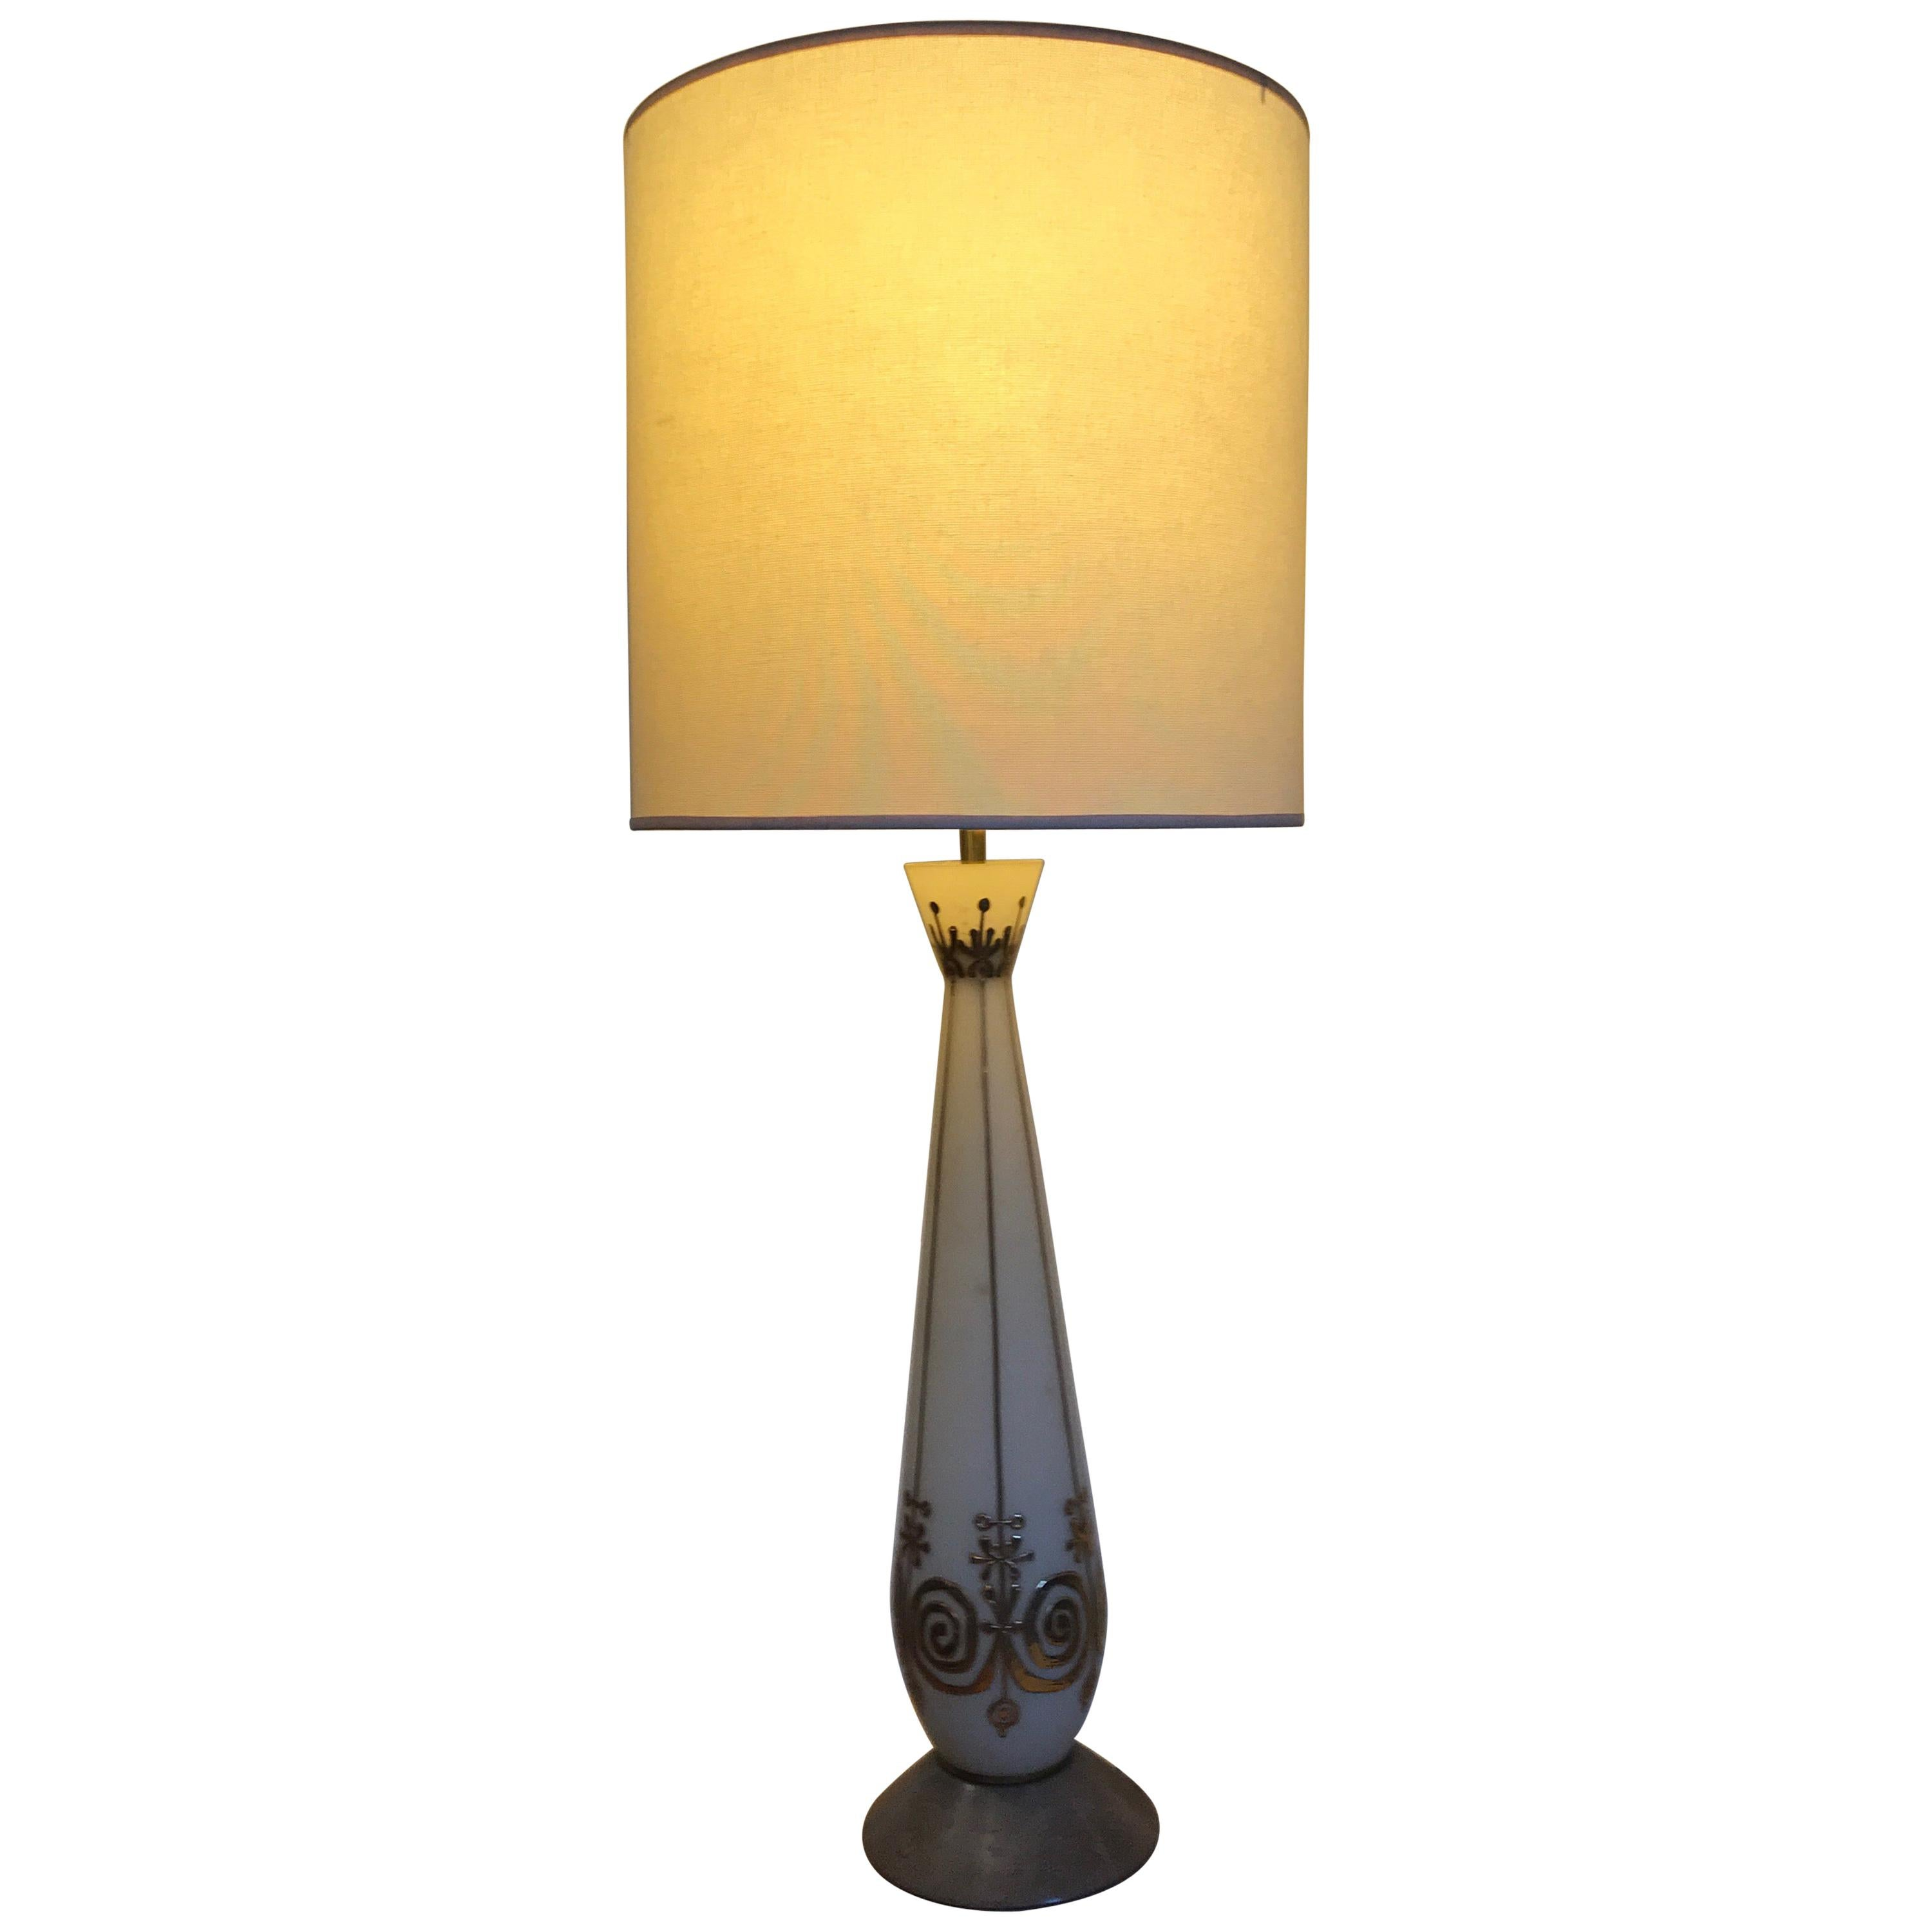 Italian Midcentury Frosted Glass Lamp